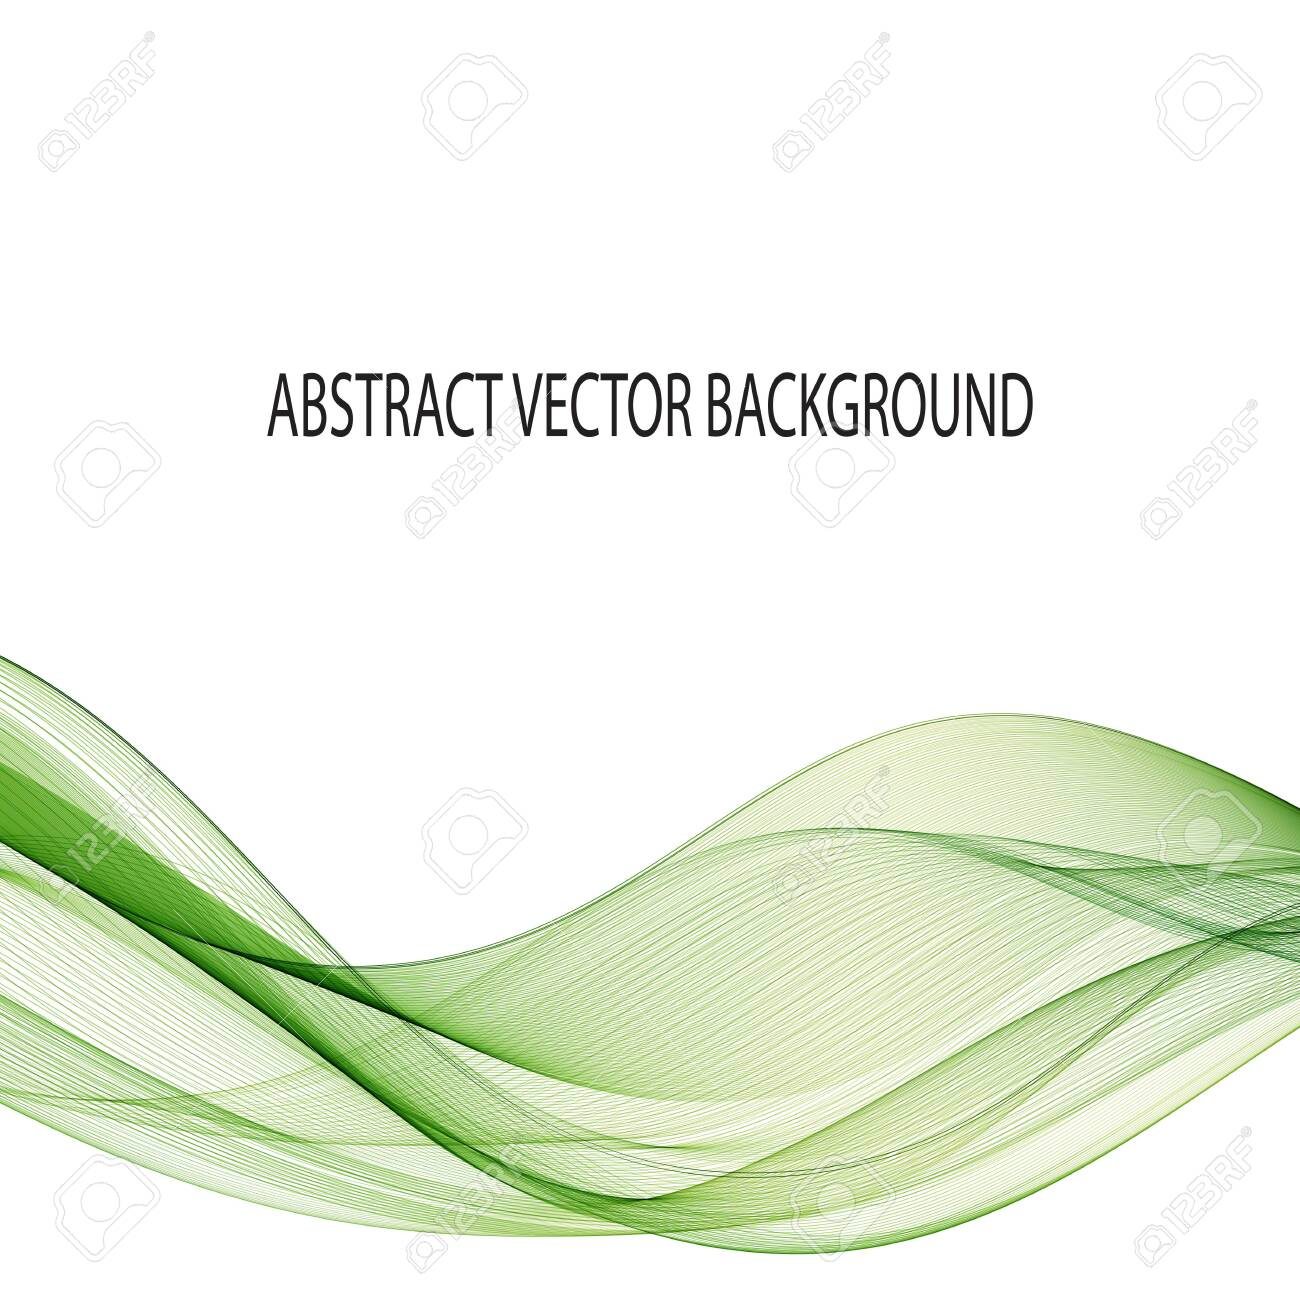 Green wave. Modern layout design. abstract vector background. eps 10 - 124474329